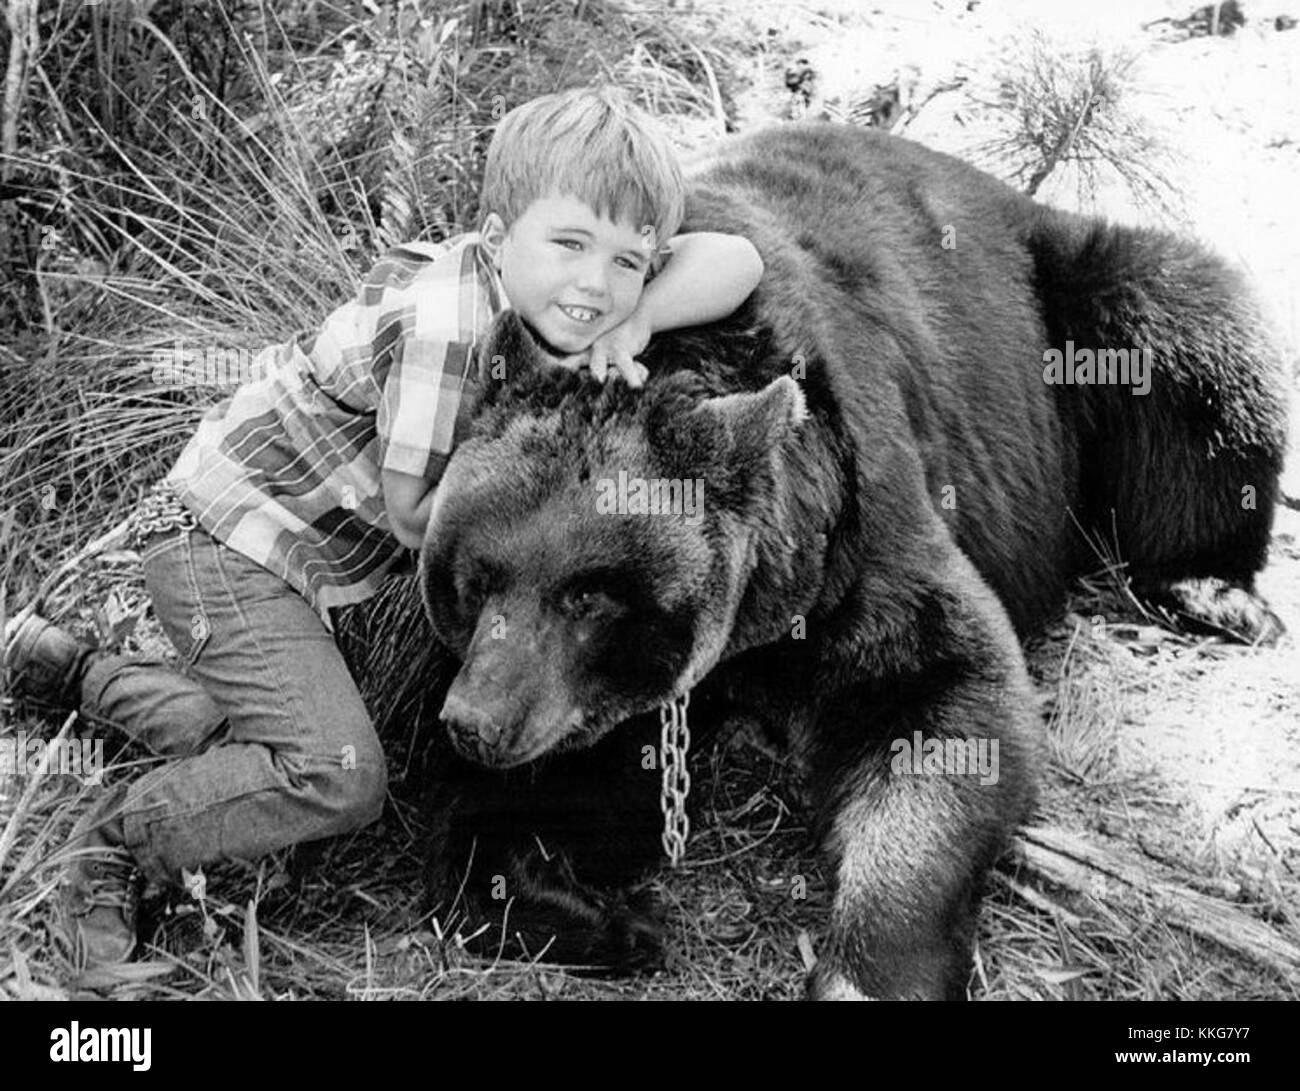 Gentle Ben premiere Clint Howard 1967 - Stock Image